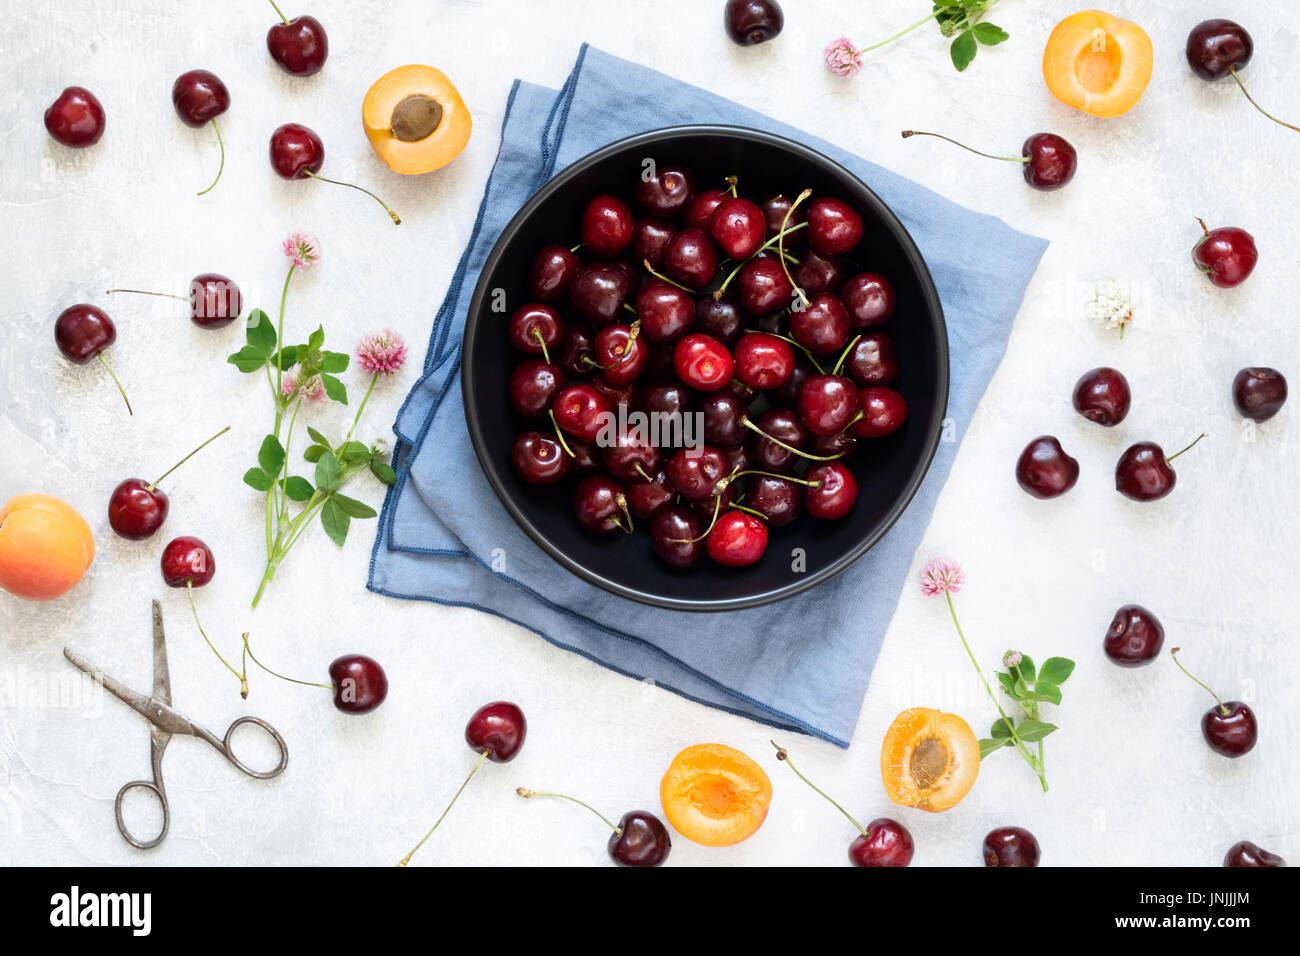 Berry flat lay with sweet cherries, apricots and clover leaf on white background, top view - Stock Image